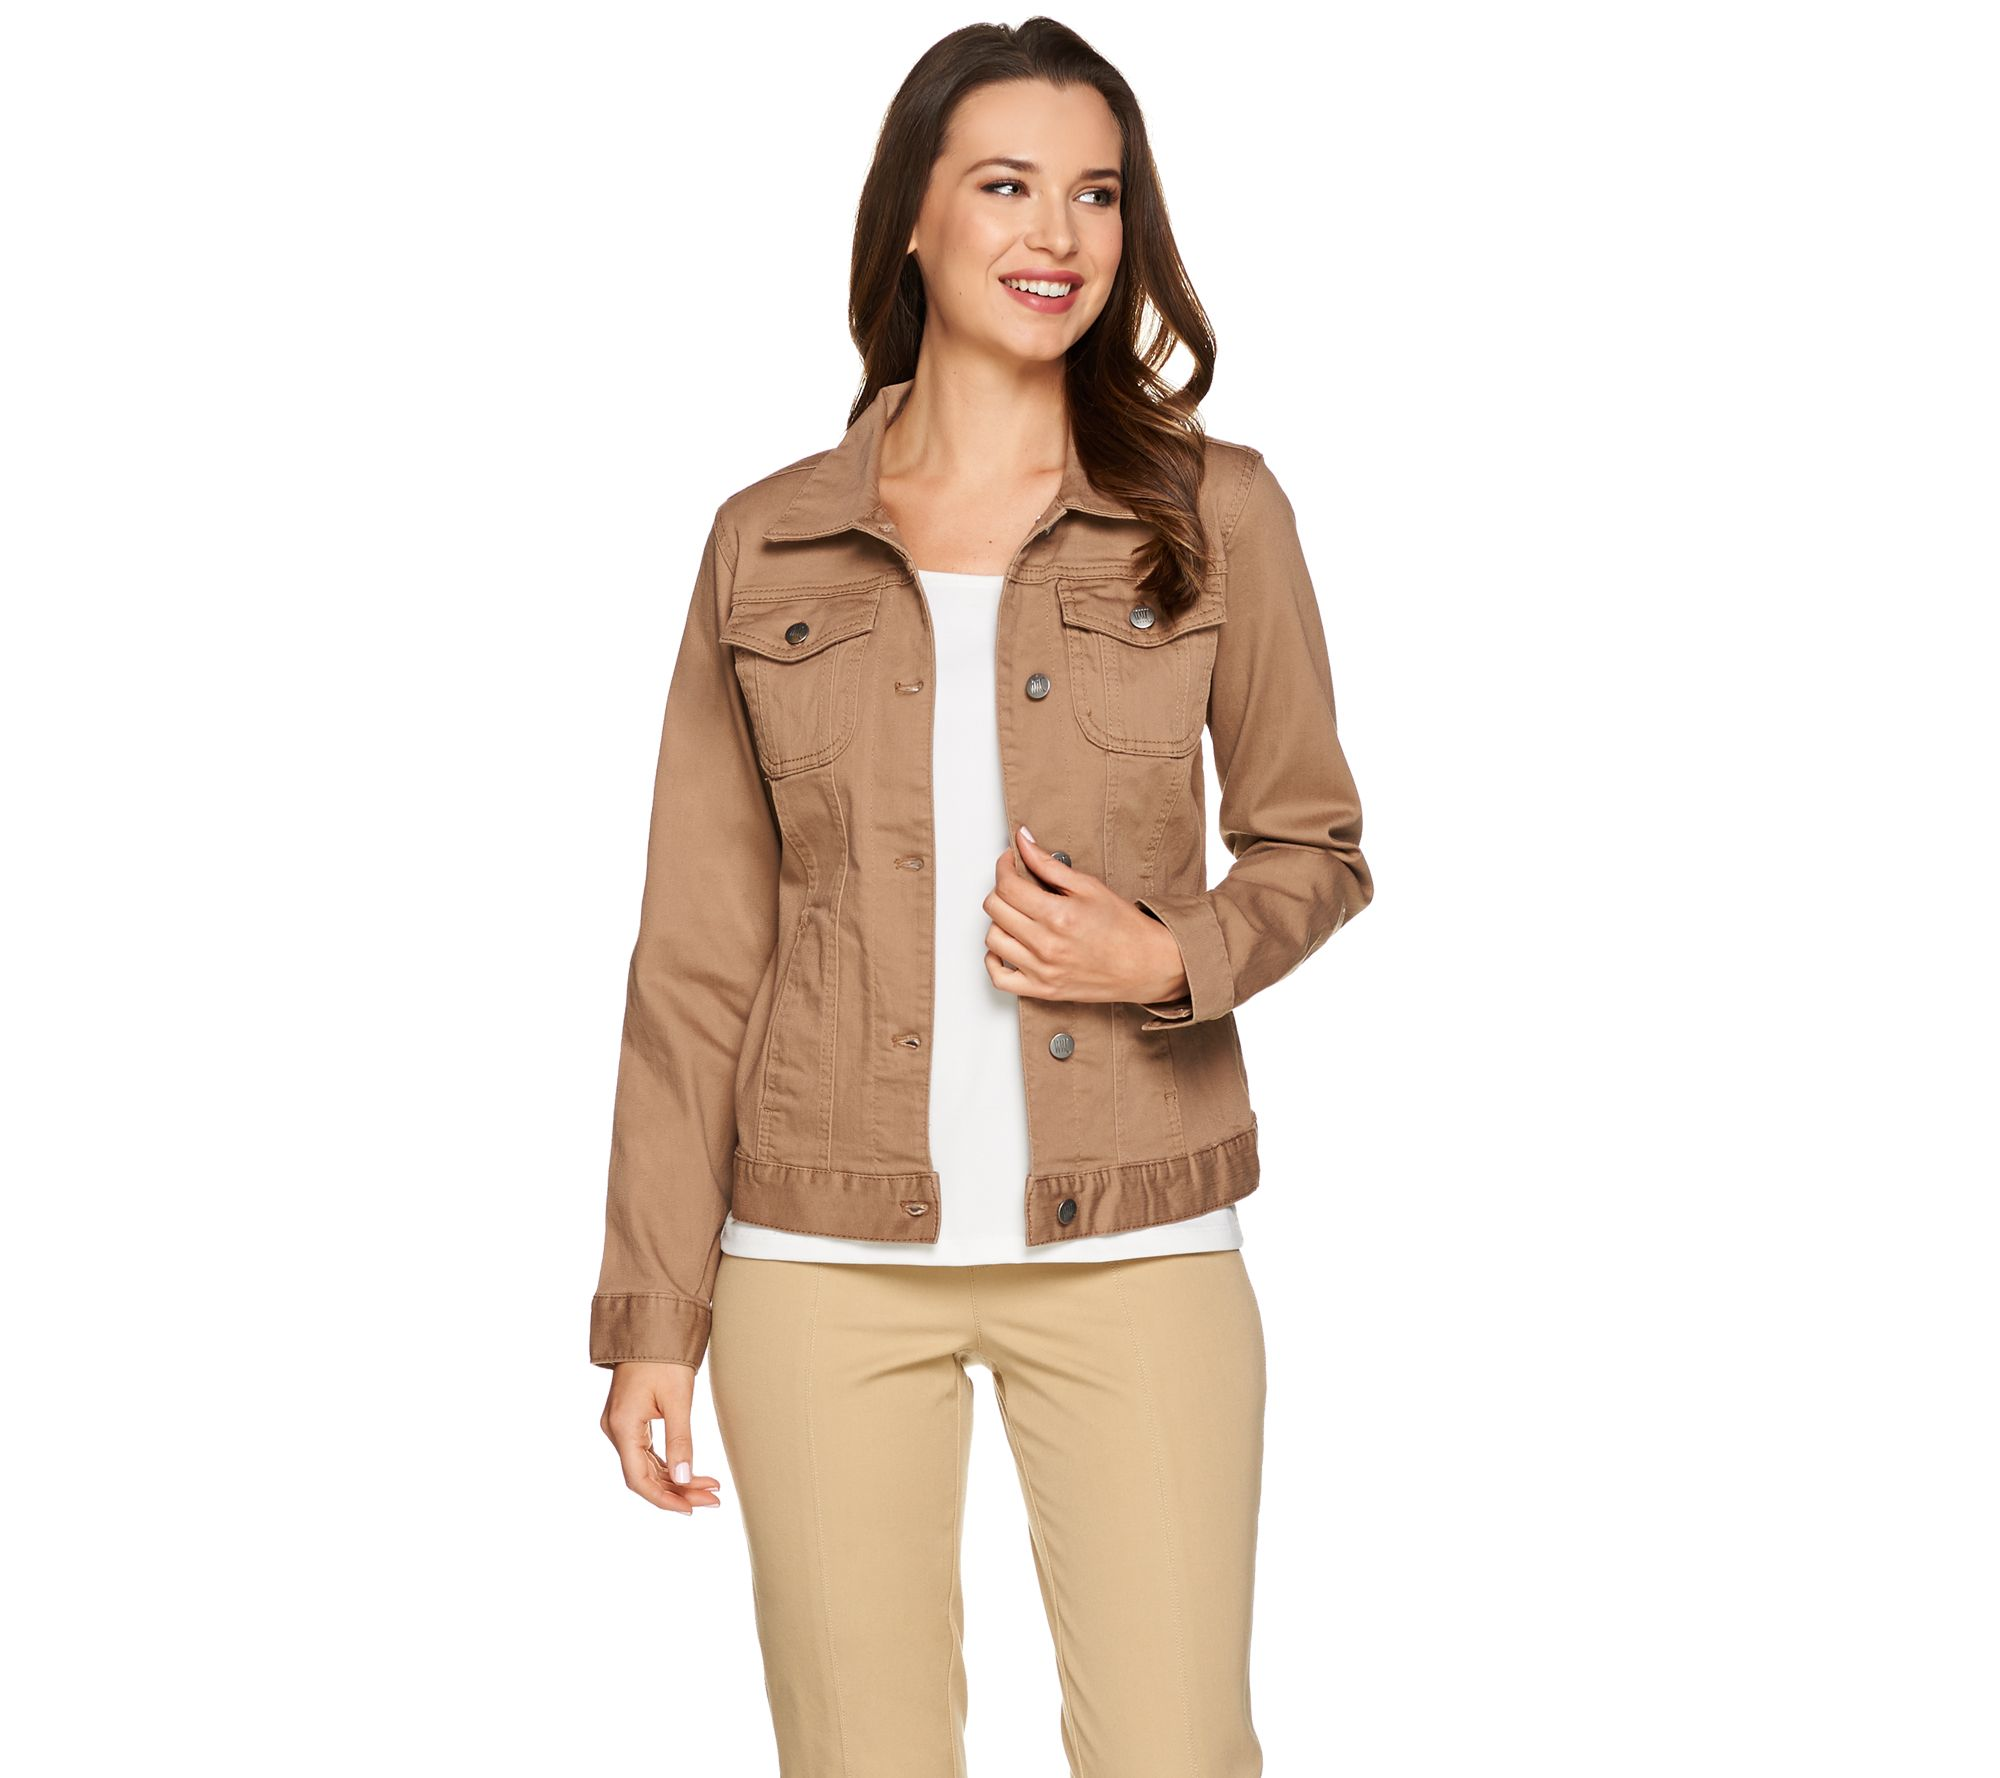 433daab8435e Women with Control Colored Denim Button Front Jean Jacket - Page 1 — QVC.com